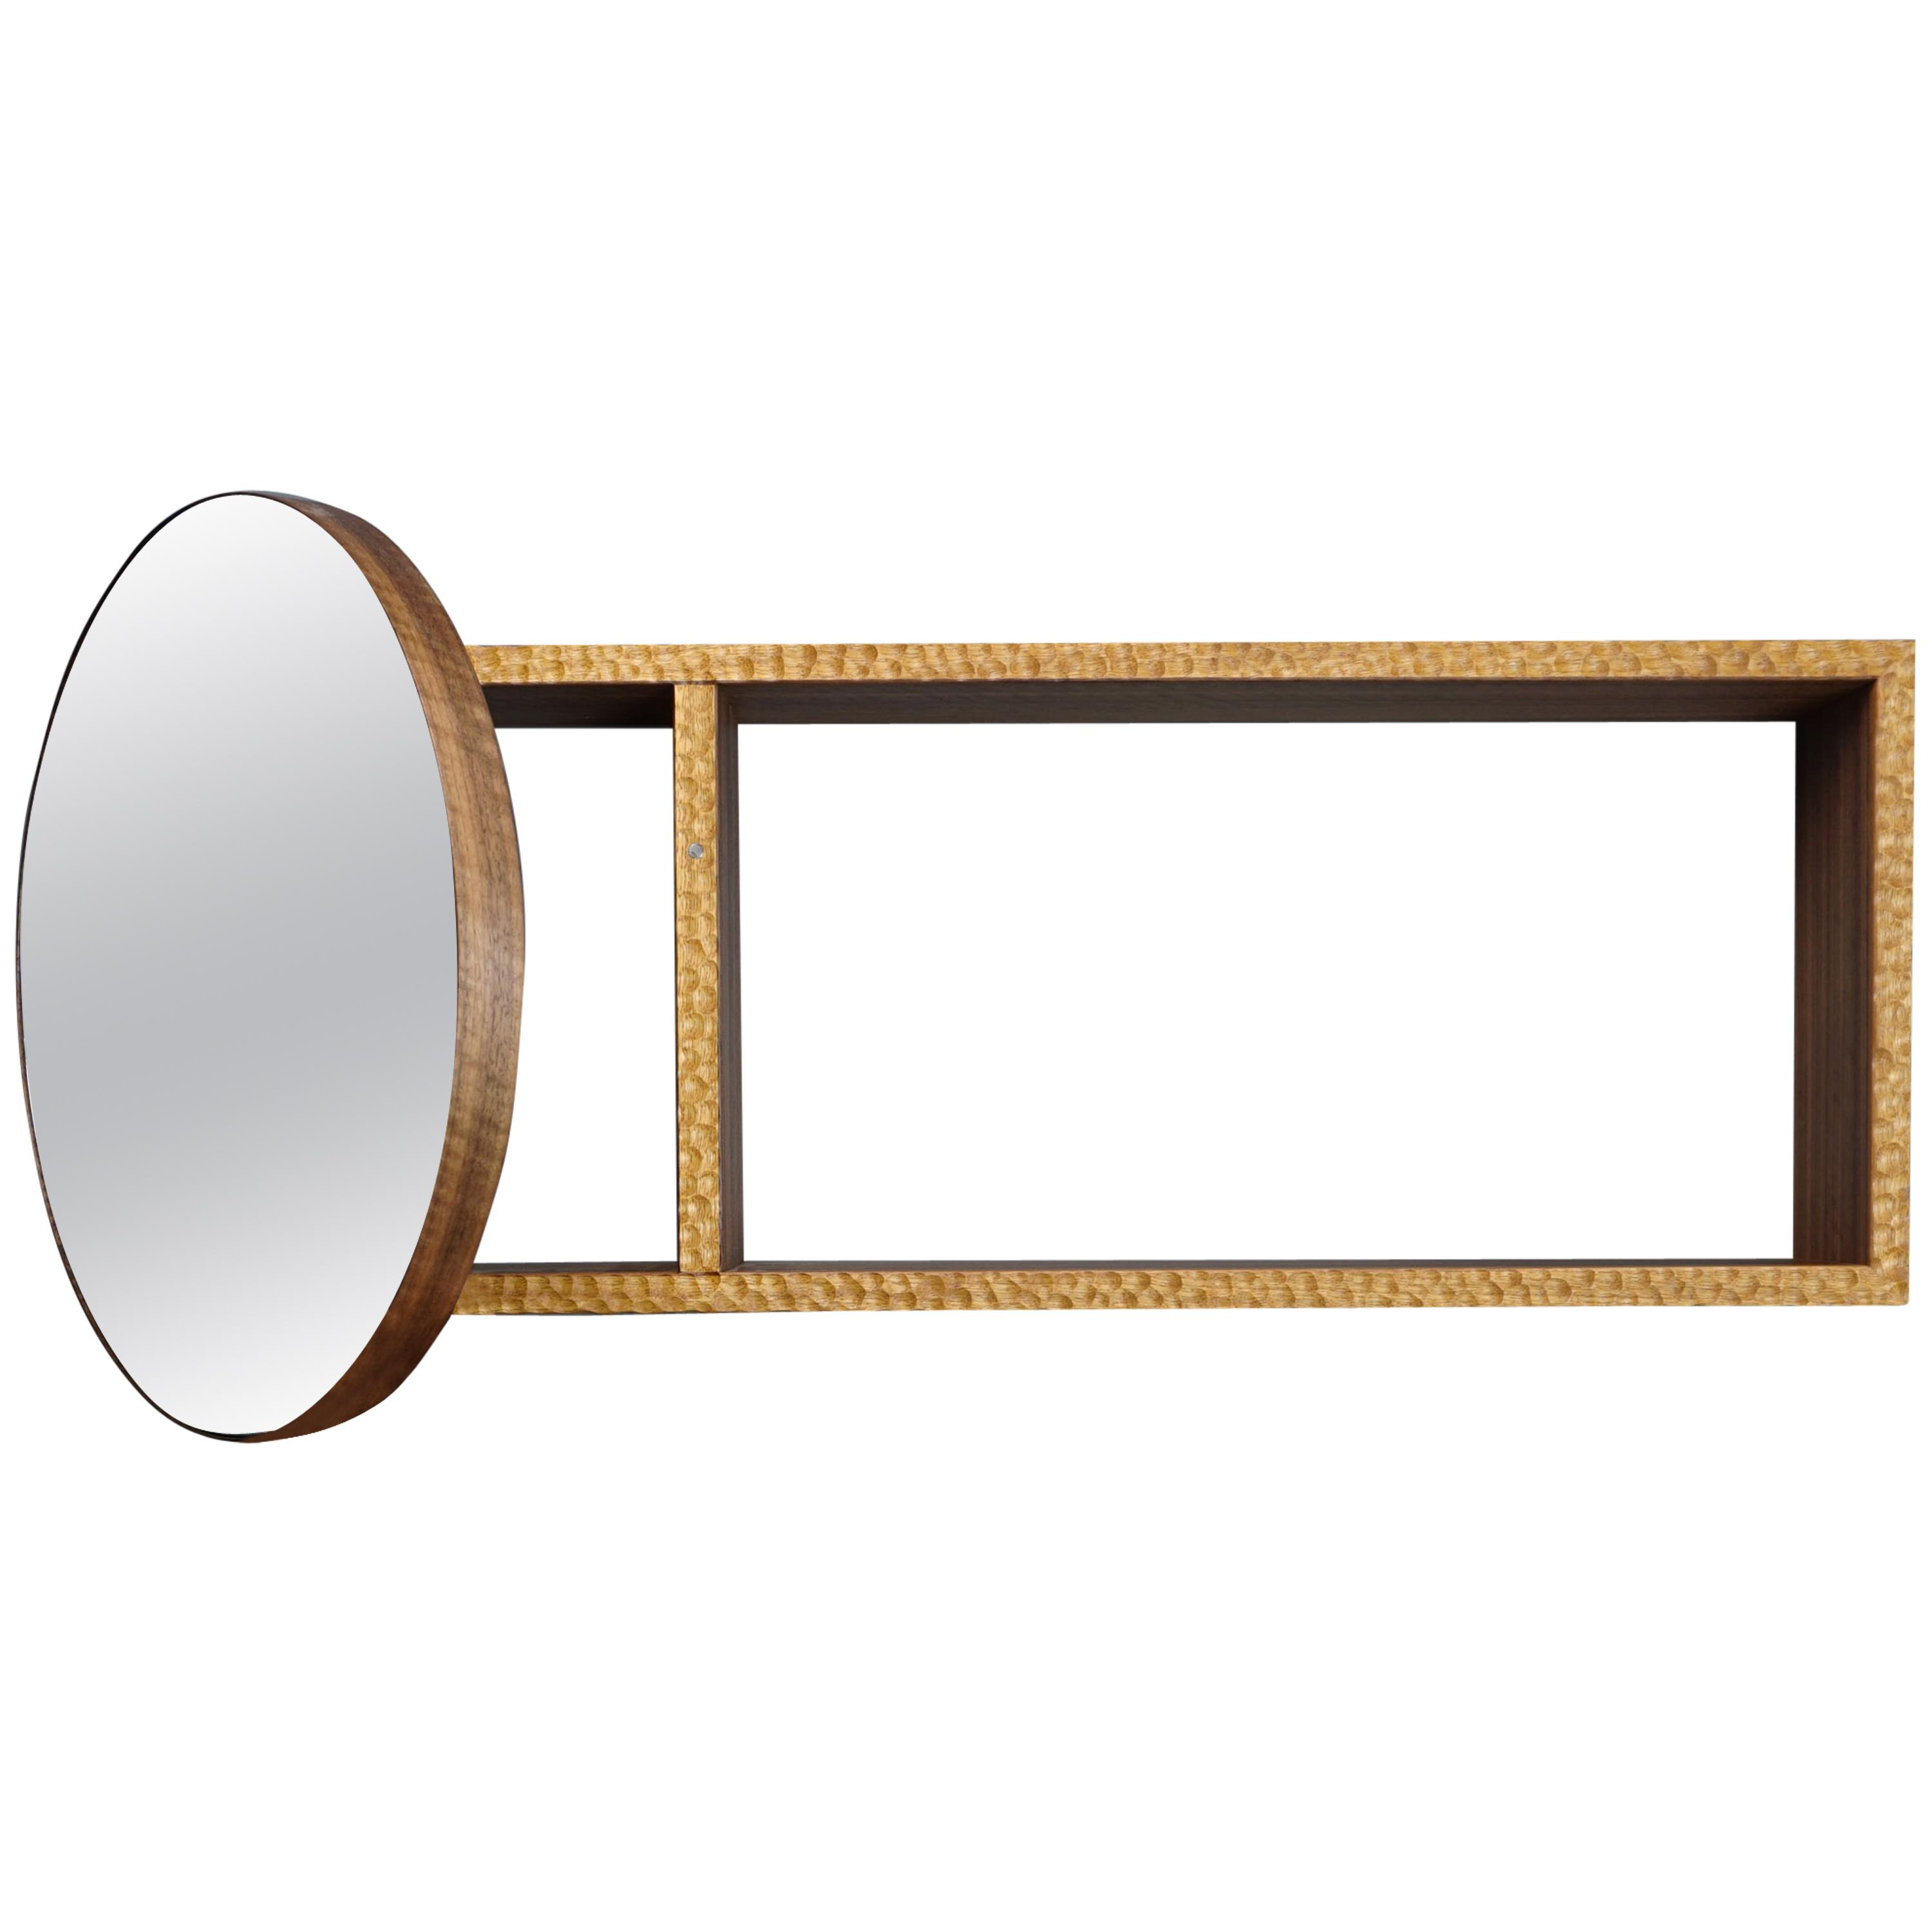 Hinged Wall Mirrors Within Most Popular Textured Cabinet With Mirror Door, Iroko And Walnut, Designedmax  Frommeld (Gallery 10 of 20)